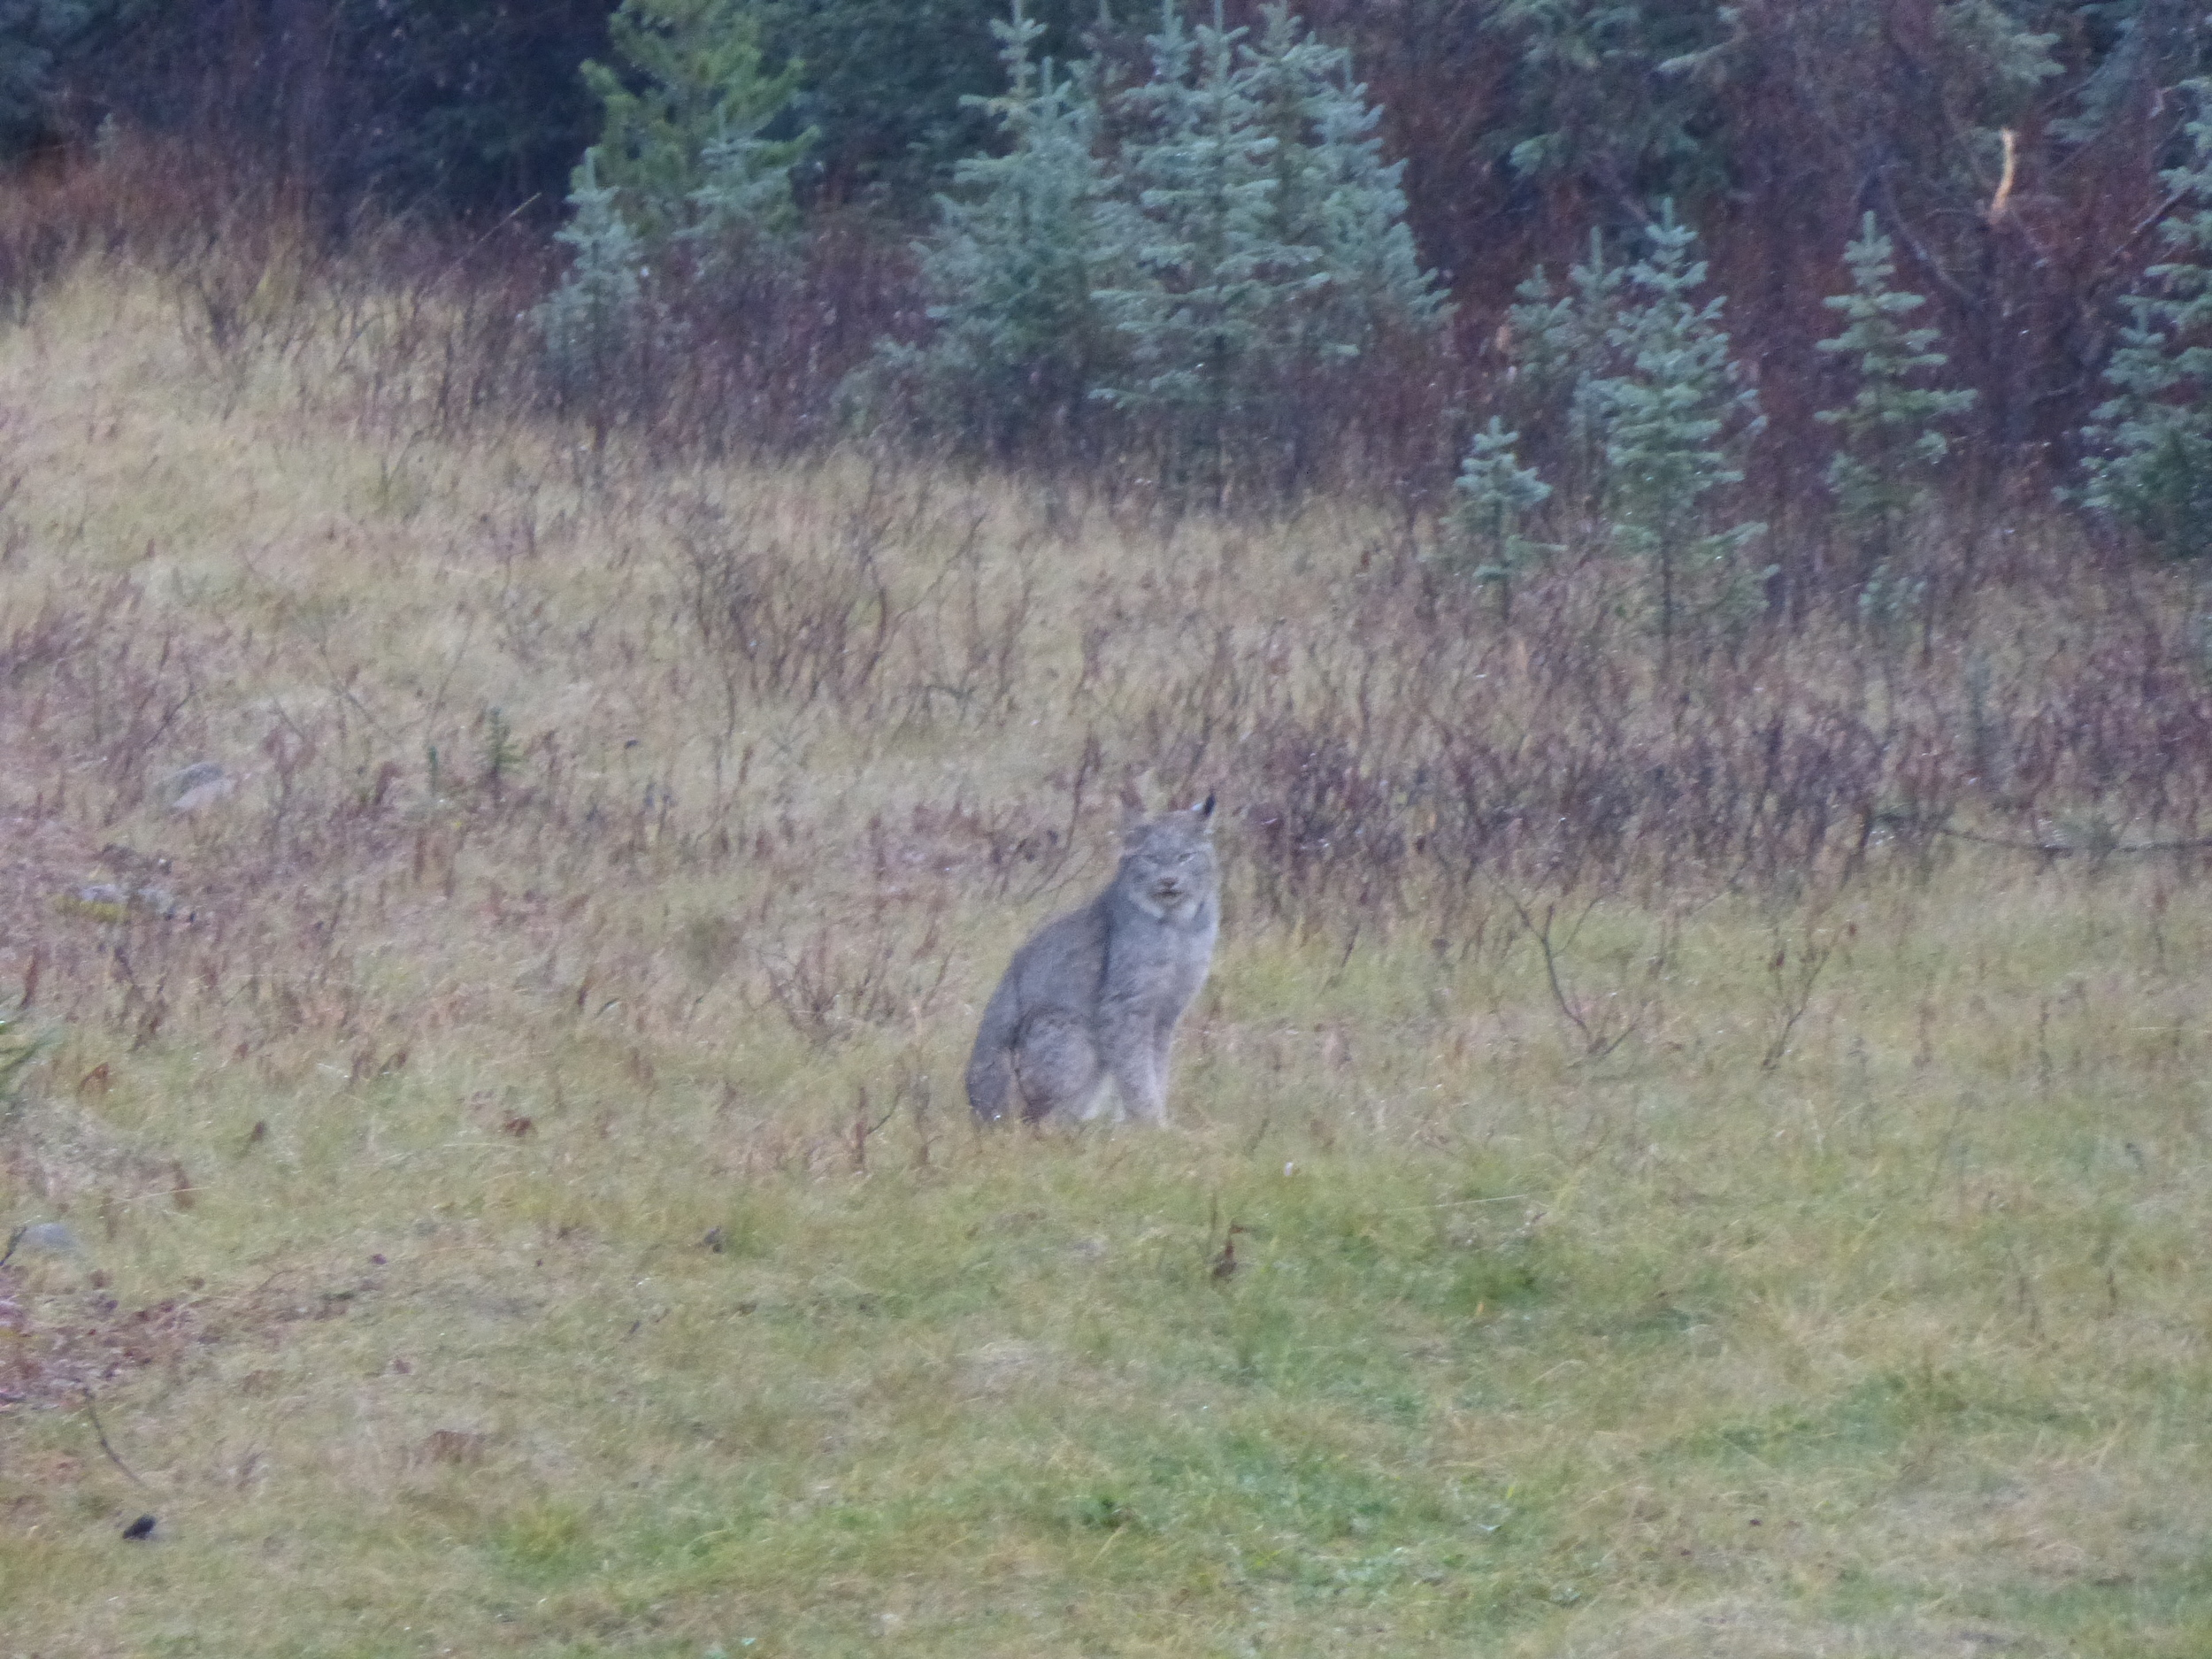 Coming around a corner I had my first wildlife encounter (albertans don't count!) a Lynx!